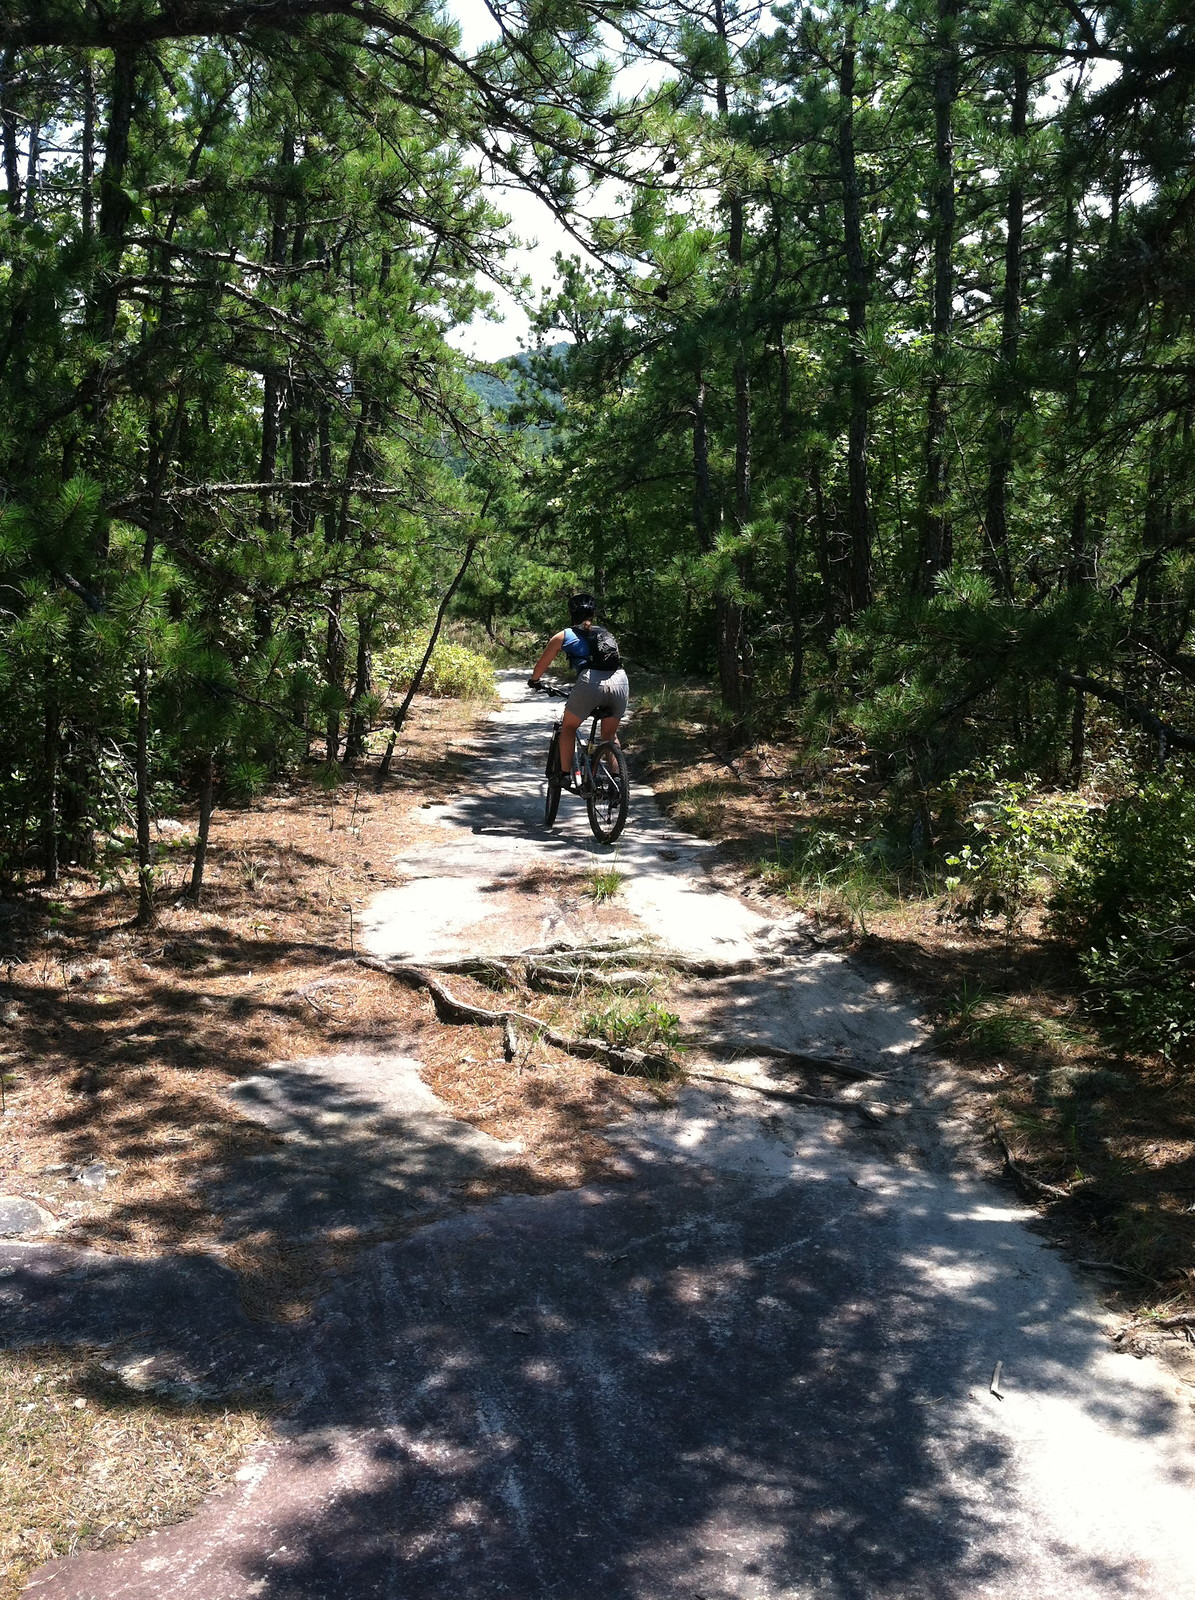 Southern Fried MTB - jason.rickles.1 - Mountain Biking Pictures - Vital MTB